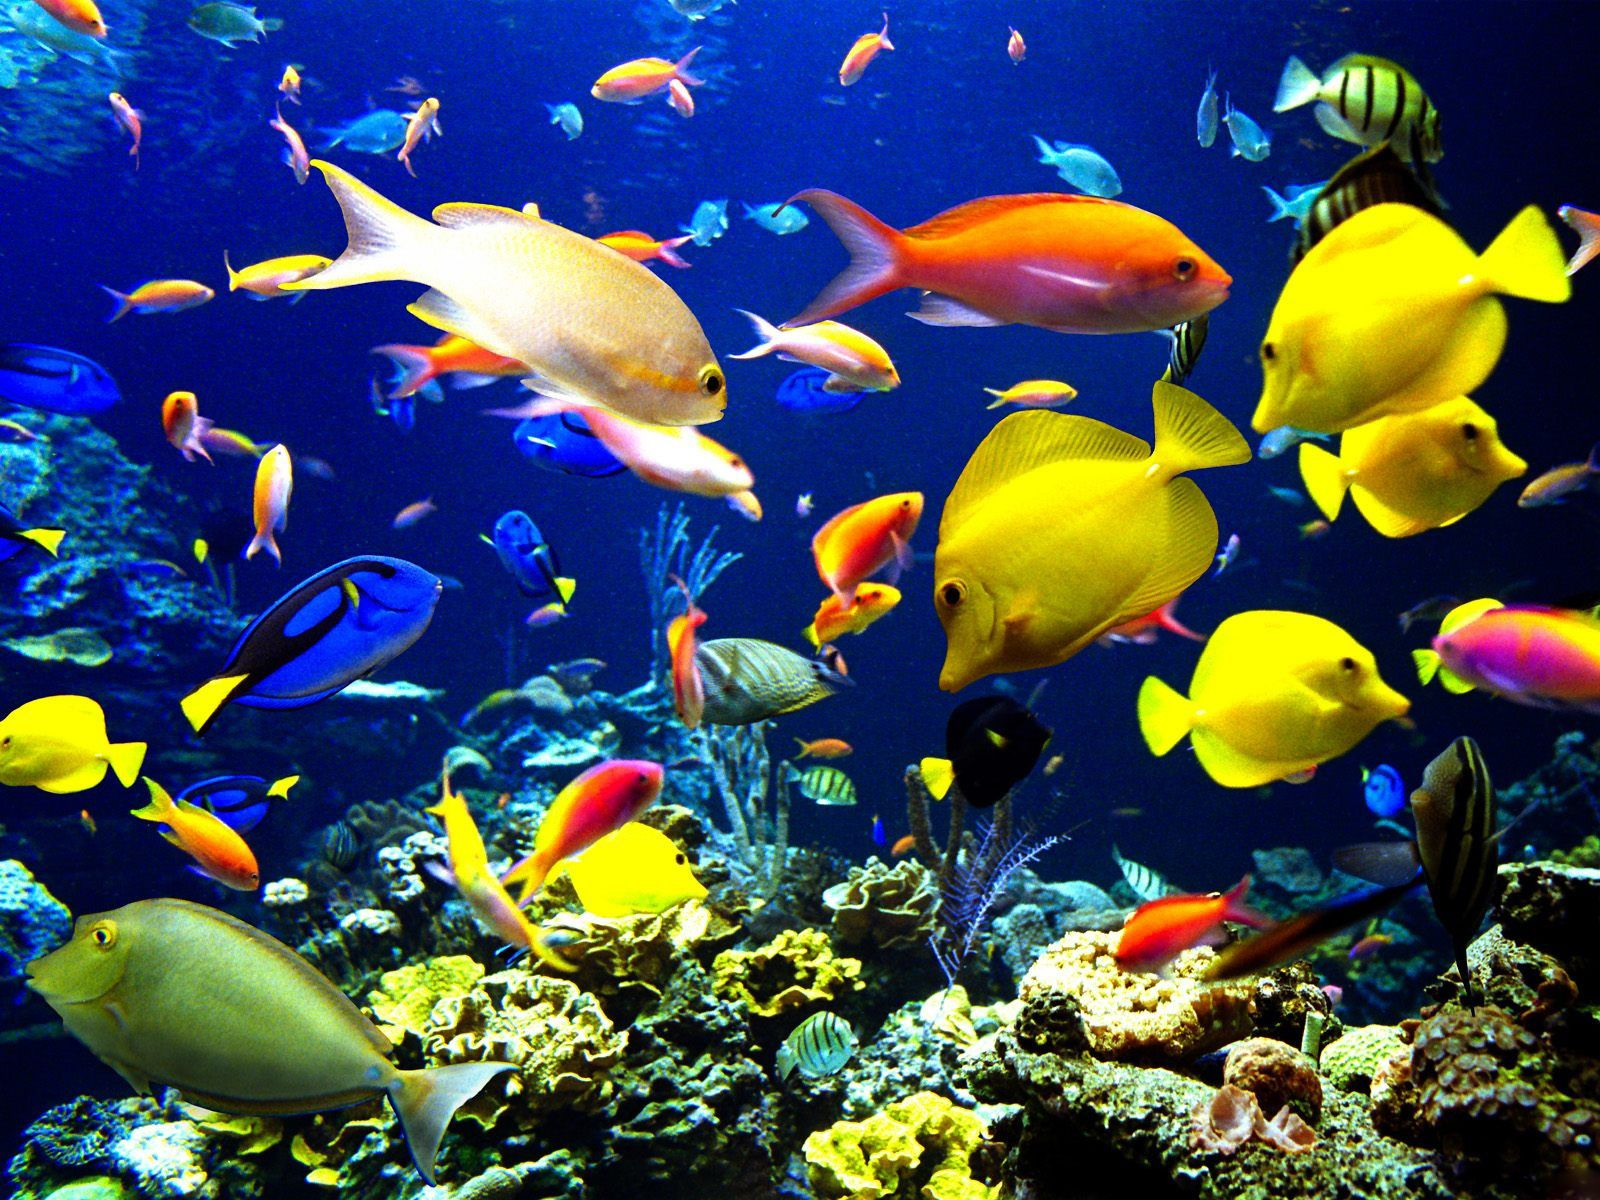 Best Wallpapers Colorful Fish Wallpapers Fish Wallpaper Colorful Fish Fish Under The Sea